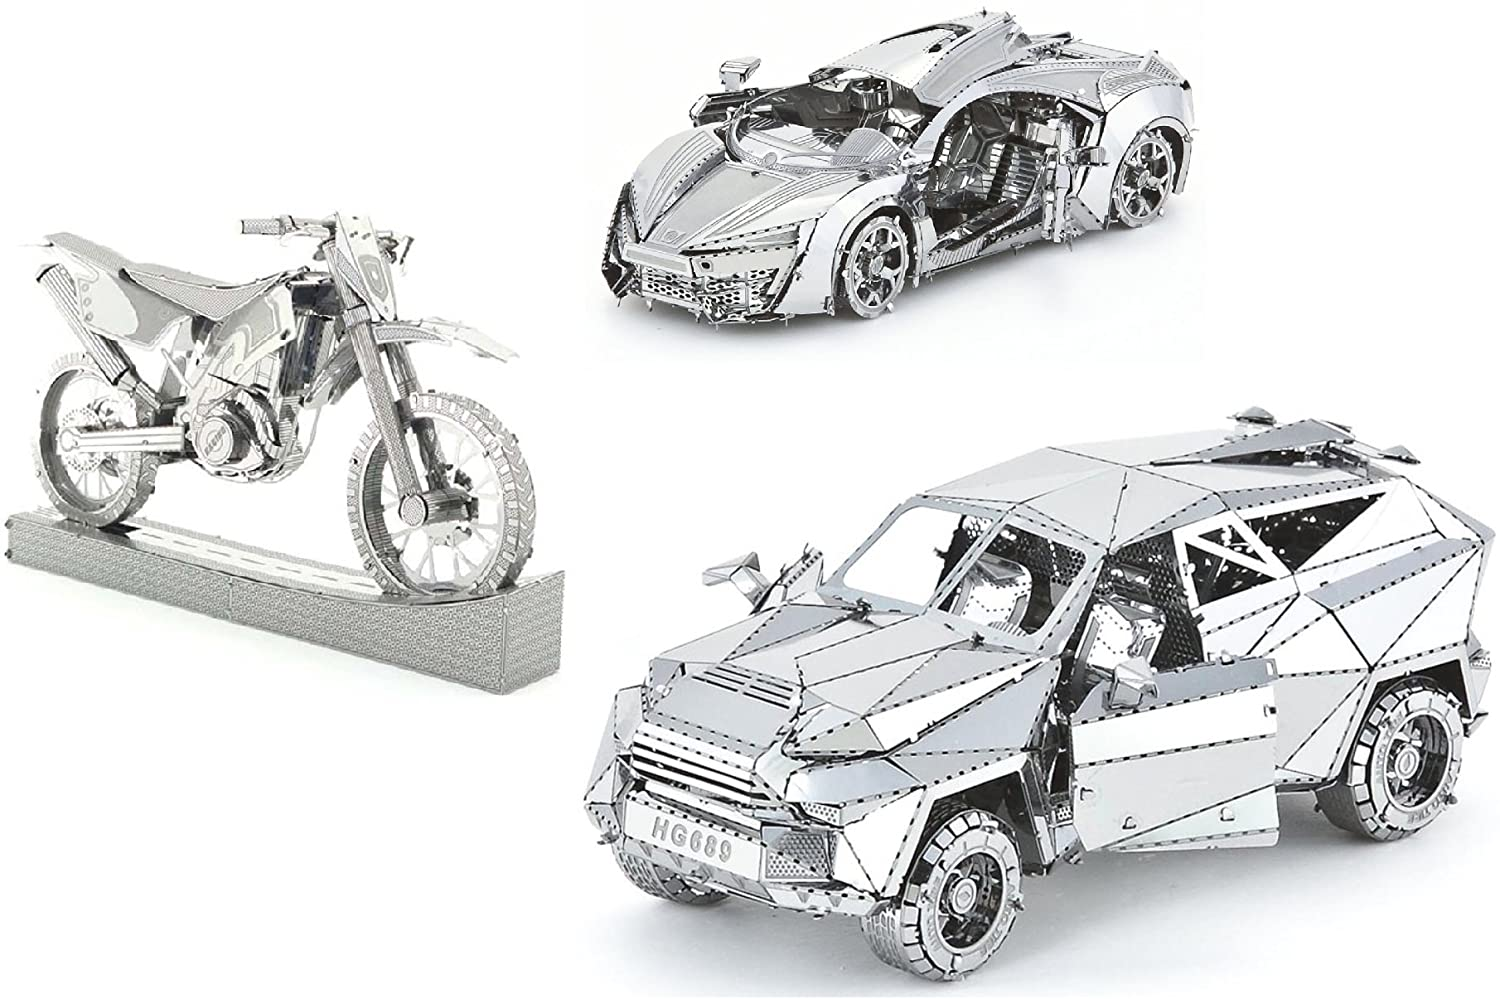 3D Metal Puzzle Car Collection Models Of Hyper Sports Vehicle, KMK F450, Motorcycle - DIY Toy Metal Sheets Assembling Puzzle, 3D puzzle – 3 Pack